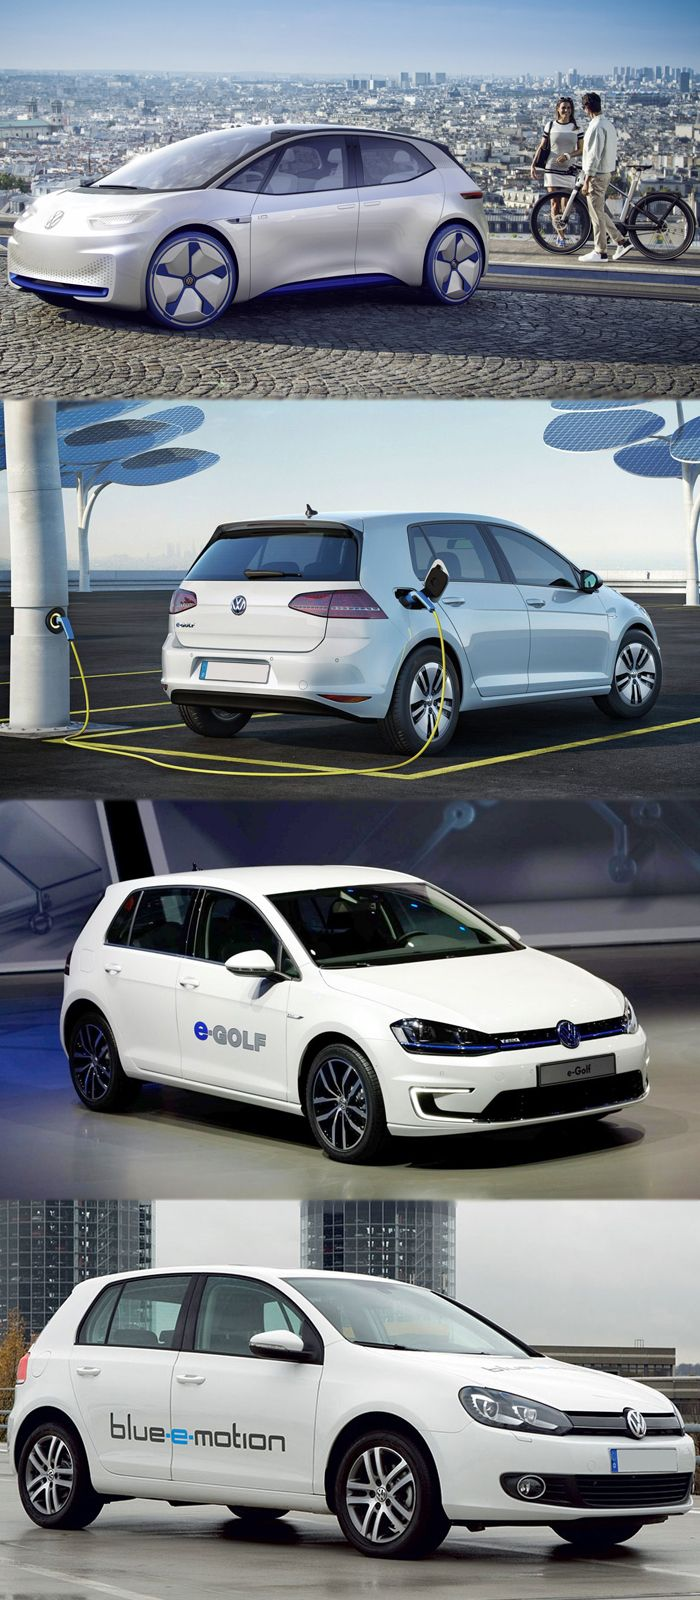 Vw s electric car for china https www reconditionengines co uk